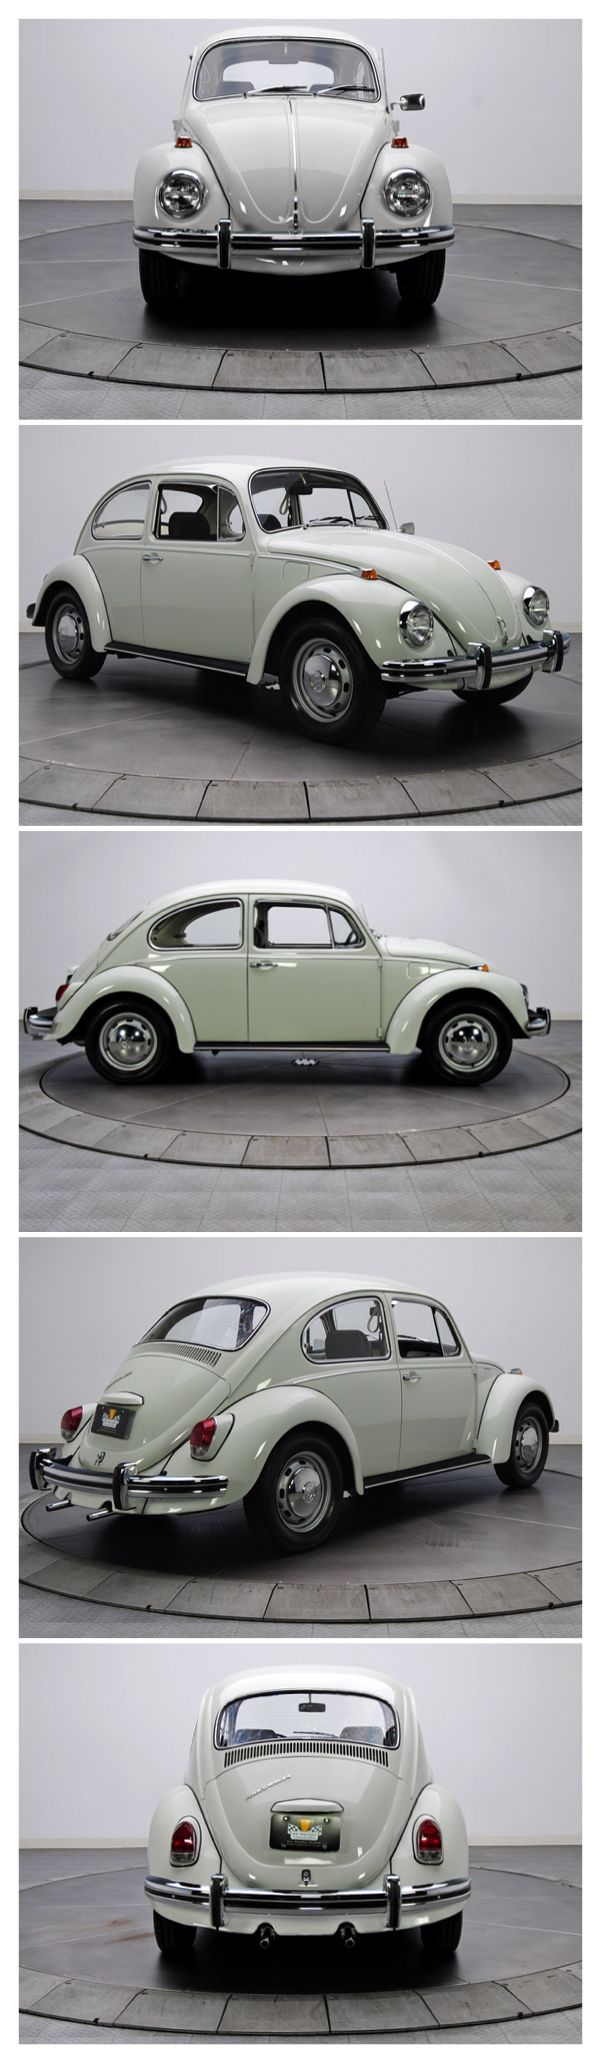 1969 vw beetle if only mine looked like this